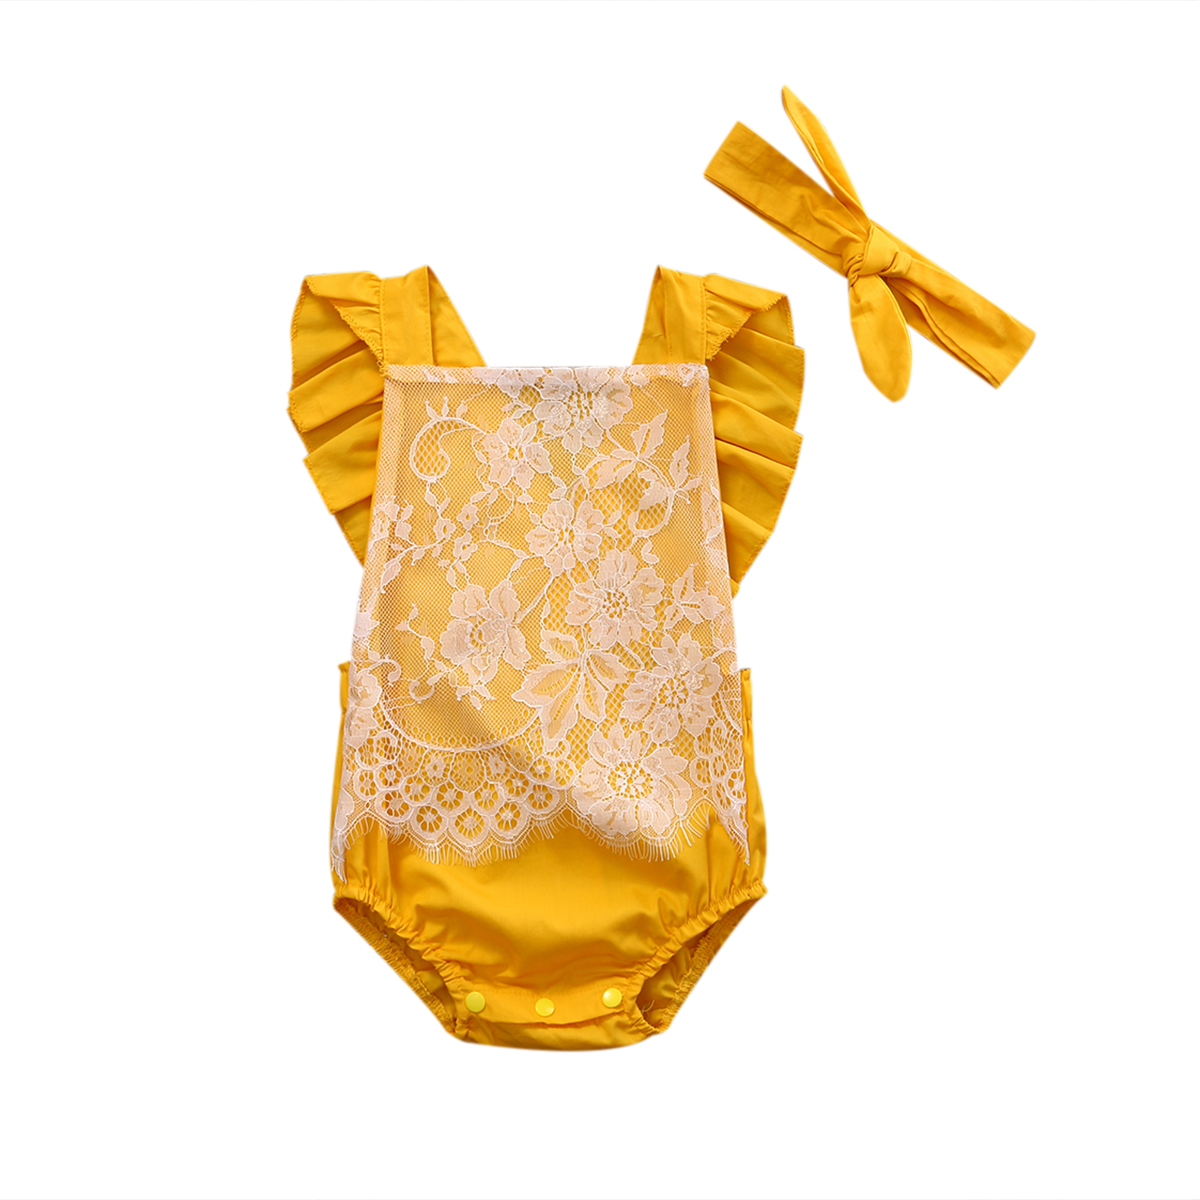 2PCS/Set Ruffles Newborn Infant Baby Girls Backless Halter Jumpsuit Lace Romper One Pieces Outfit Sunsuit Children Clothes 0-24M fashion 2pcs set newborn baby girls jumpsuit toddler girls flower pattern outfit clothes romper bodysuit pants